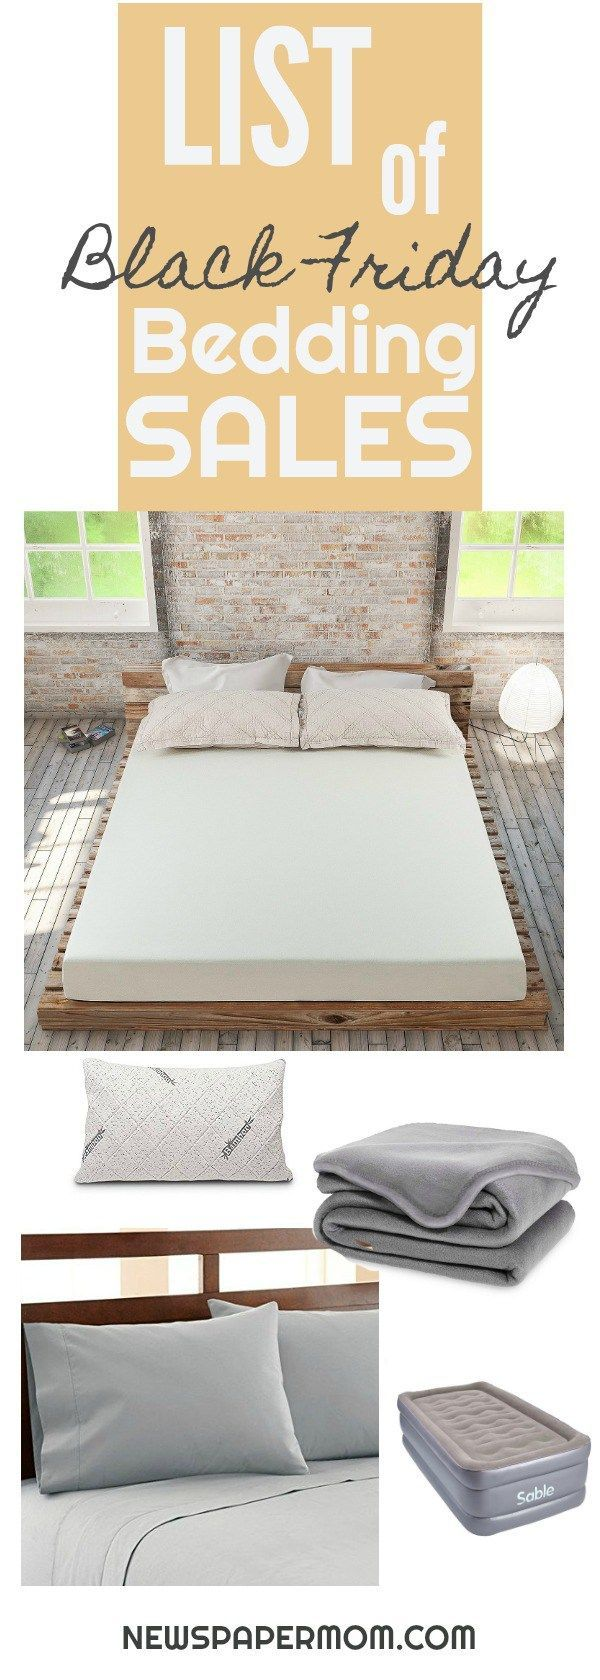 140 best mattresses images on pinterest mattresses 8 hours and